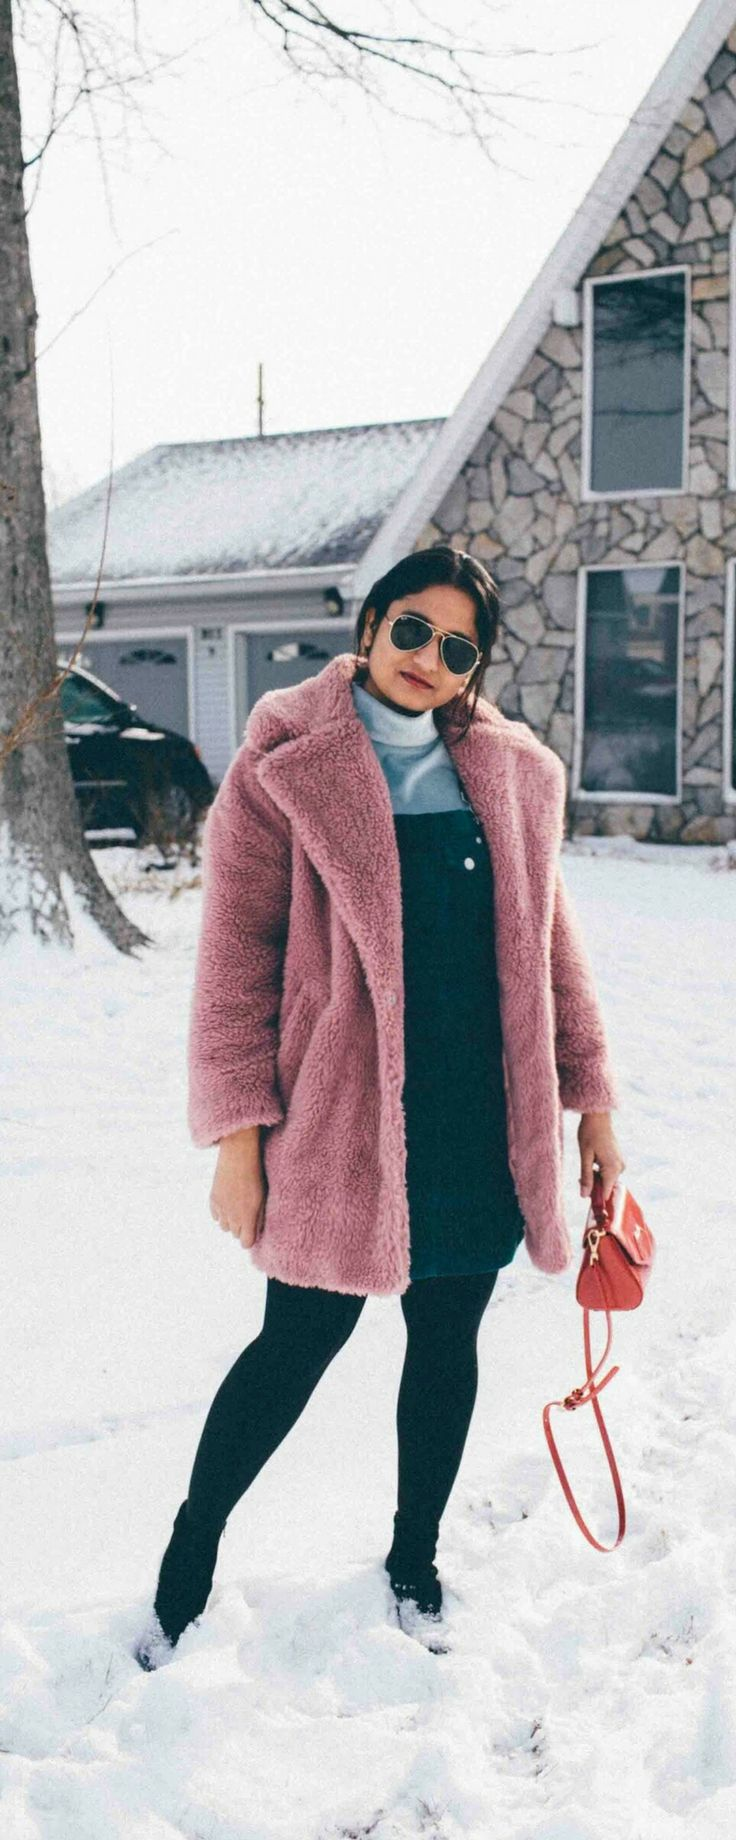 Best of Presidents Day Sales 2018 | dreamingloud.com --------------------------------------------Suede overall dress, asos pinafore dress, teal overall dress, velvet mock tee, topshop faux fur coat, teddy coat, pink coat, pink fut coat, winter outfit ideas, cute winter layering, chic winter outfits, snow outfits, lulu Guinness lip bag, black heel booties